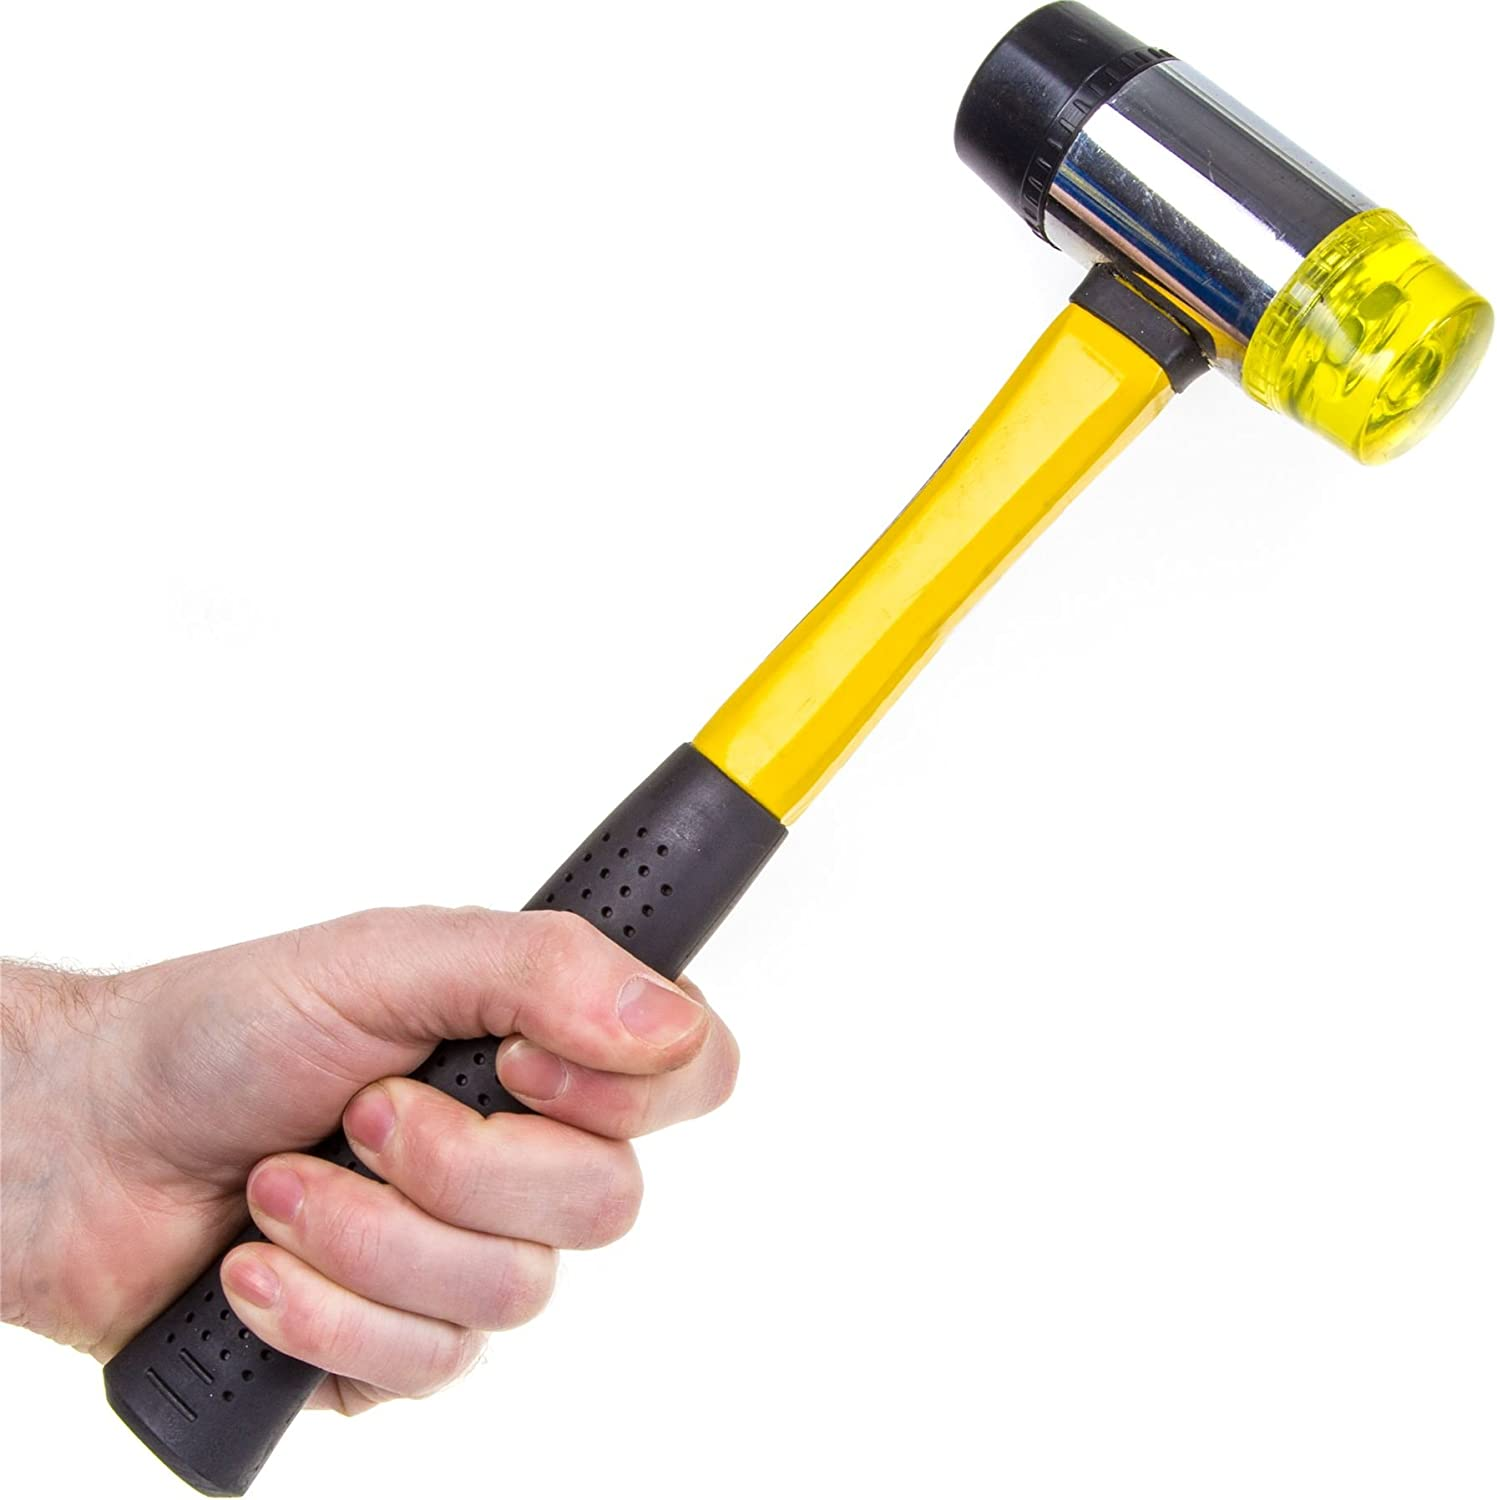 Hilka Tools 60600045 45 mm Rubber and Plastic Mallet Black//Yellow-MALLET Hard